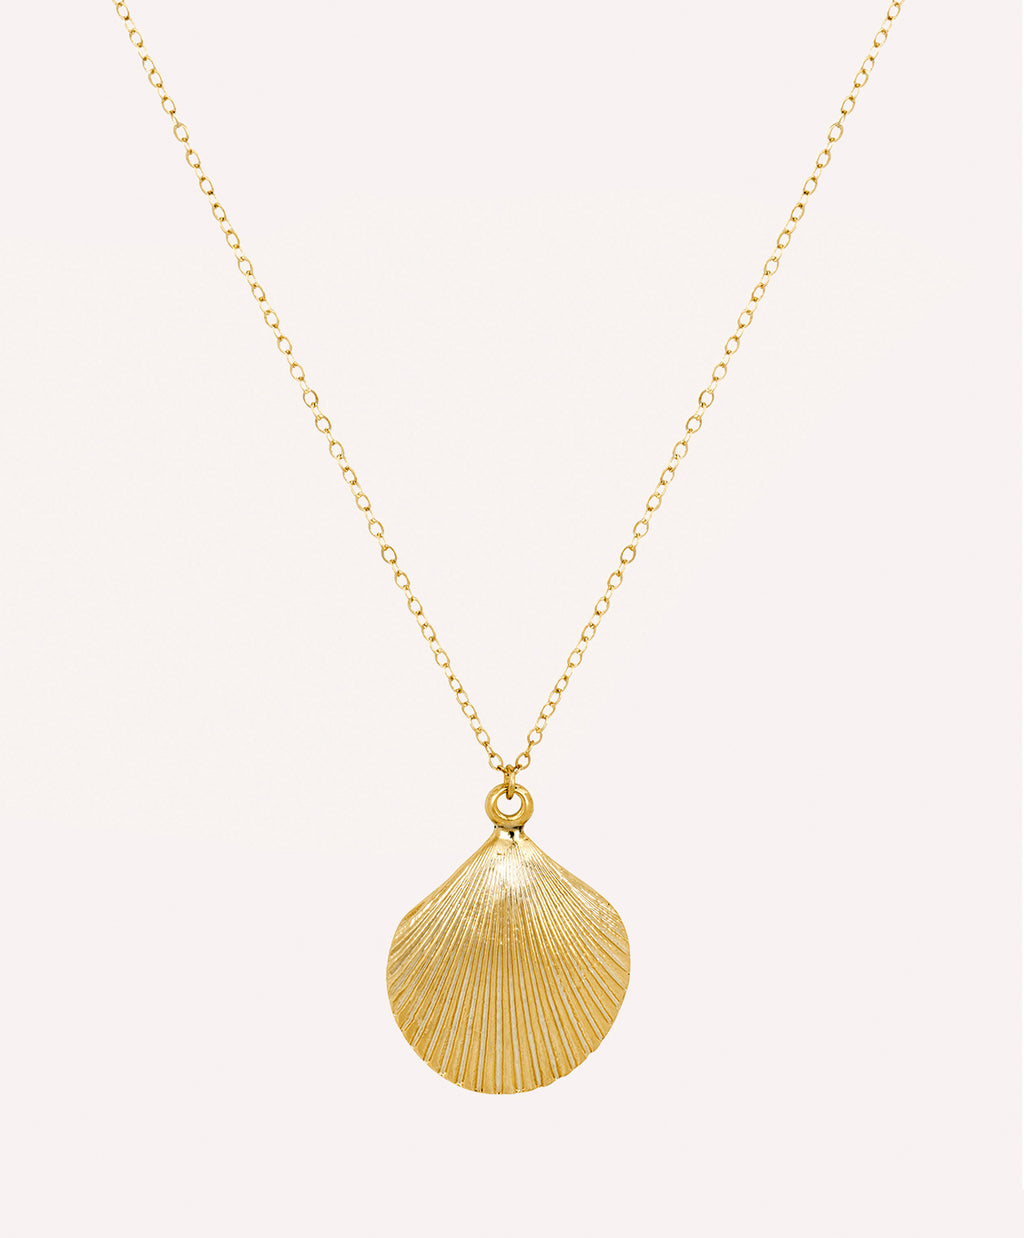 Gold seashell pendant necklace